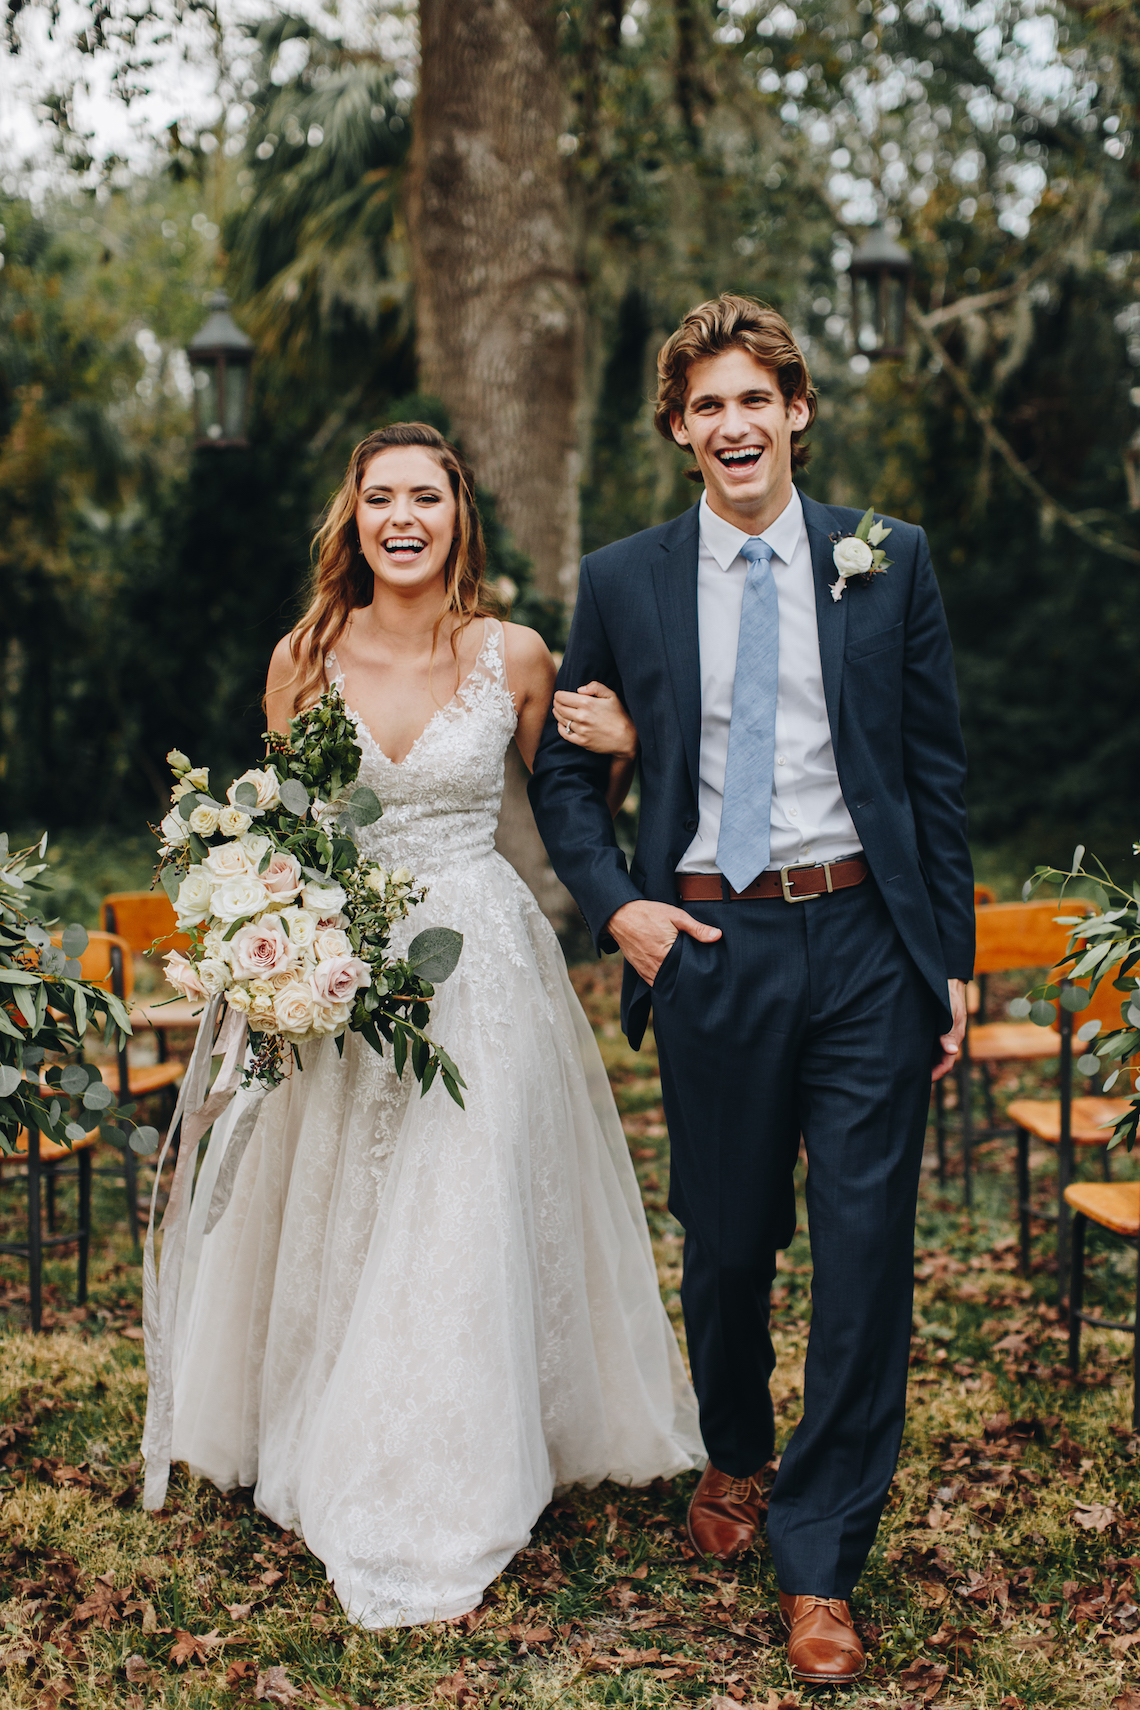 Vintage Fall Farmhouse Wedding Inspiration | Patina & Petals | Sydney Marie Photography 30